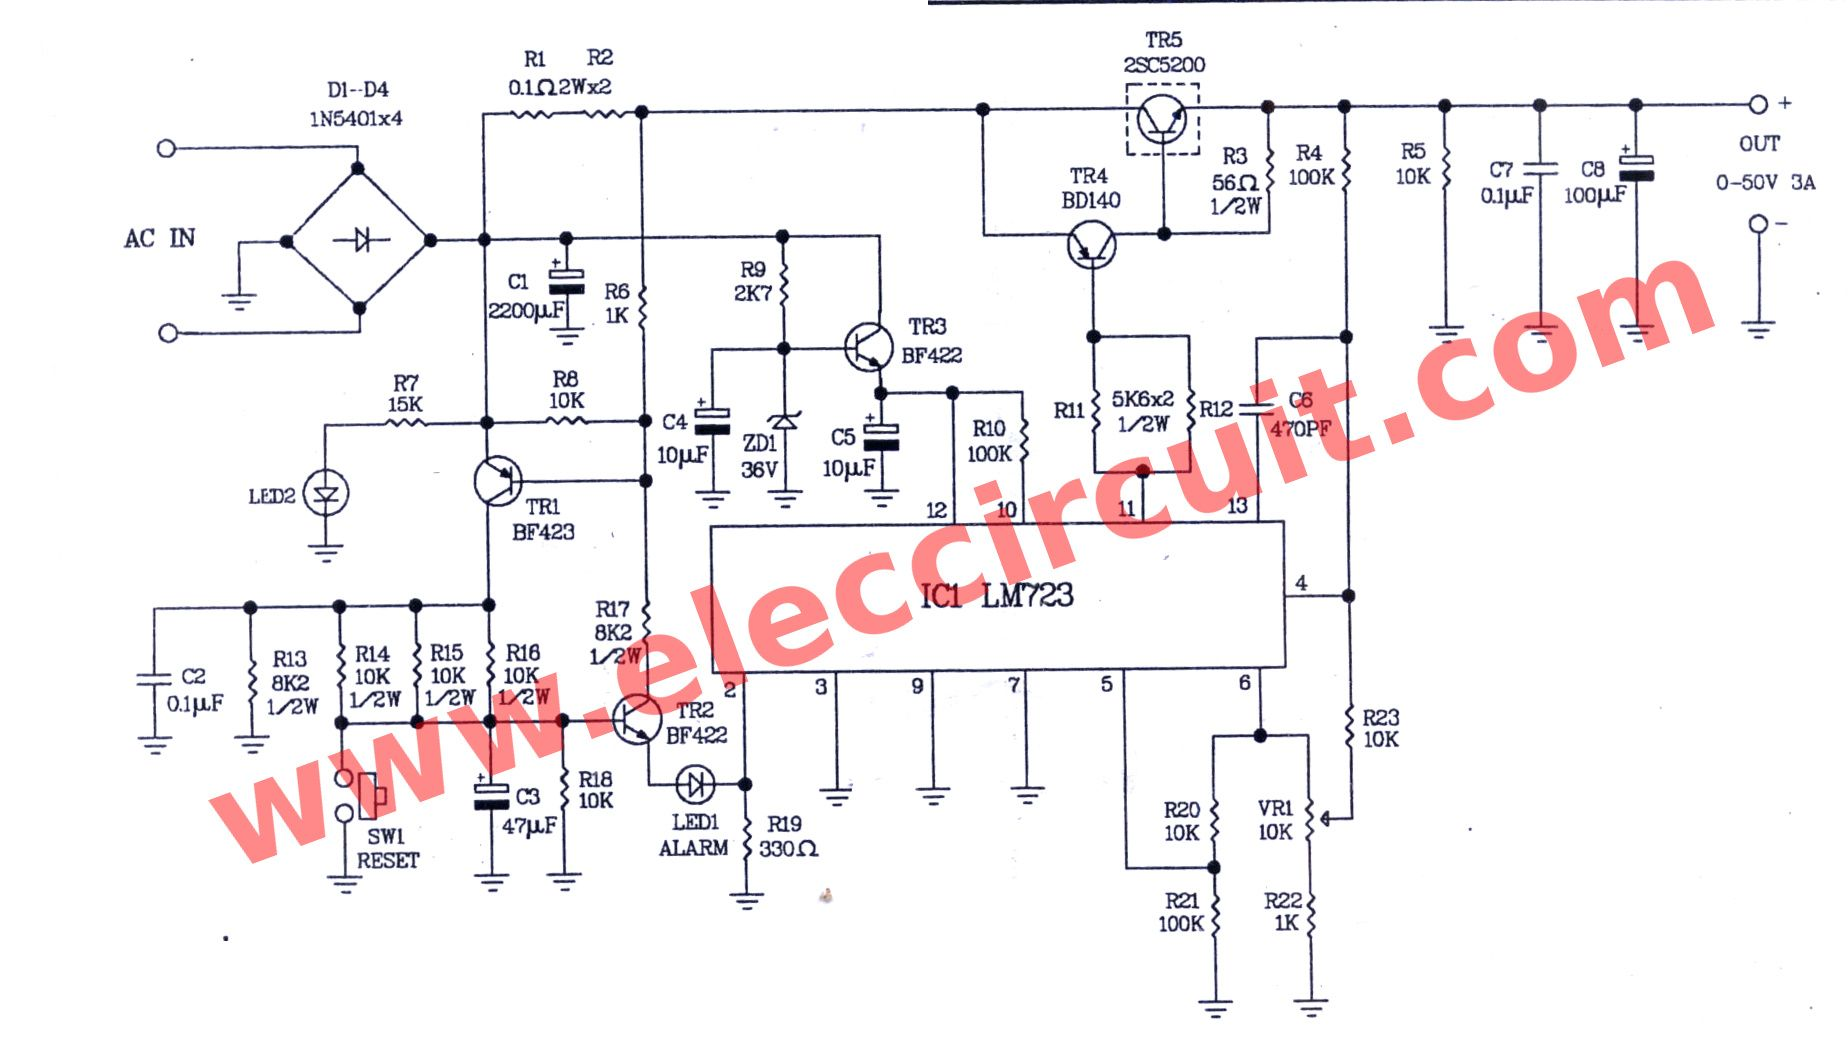 hight resolution of this regulator is 0 50v variable power supply circuit 3a that adjust output voltage 0v to 50 volts and important is the overcurrent protection at 3 a